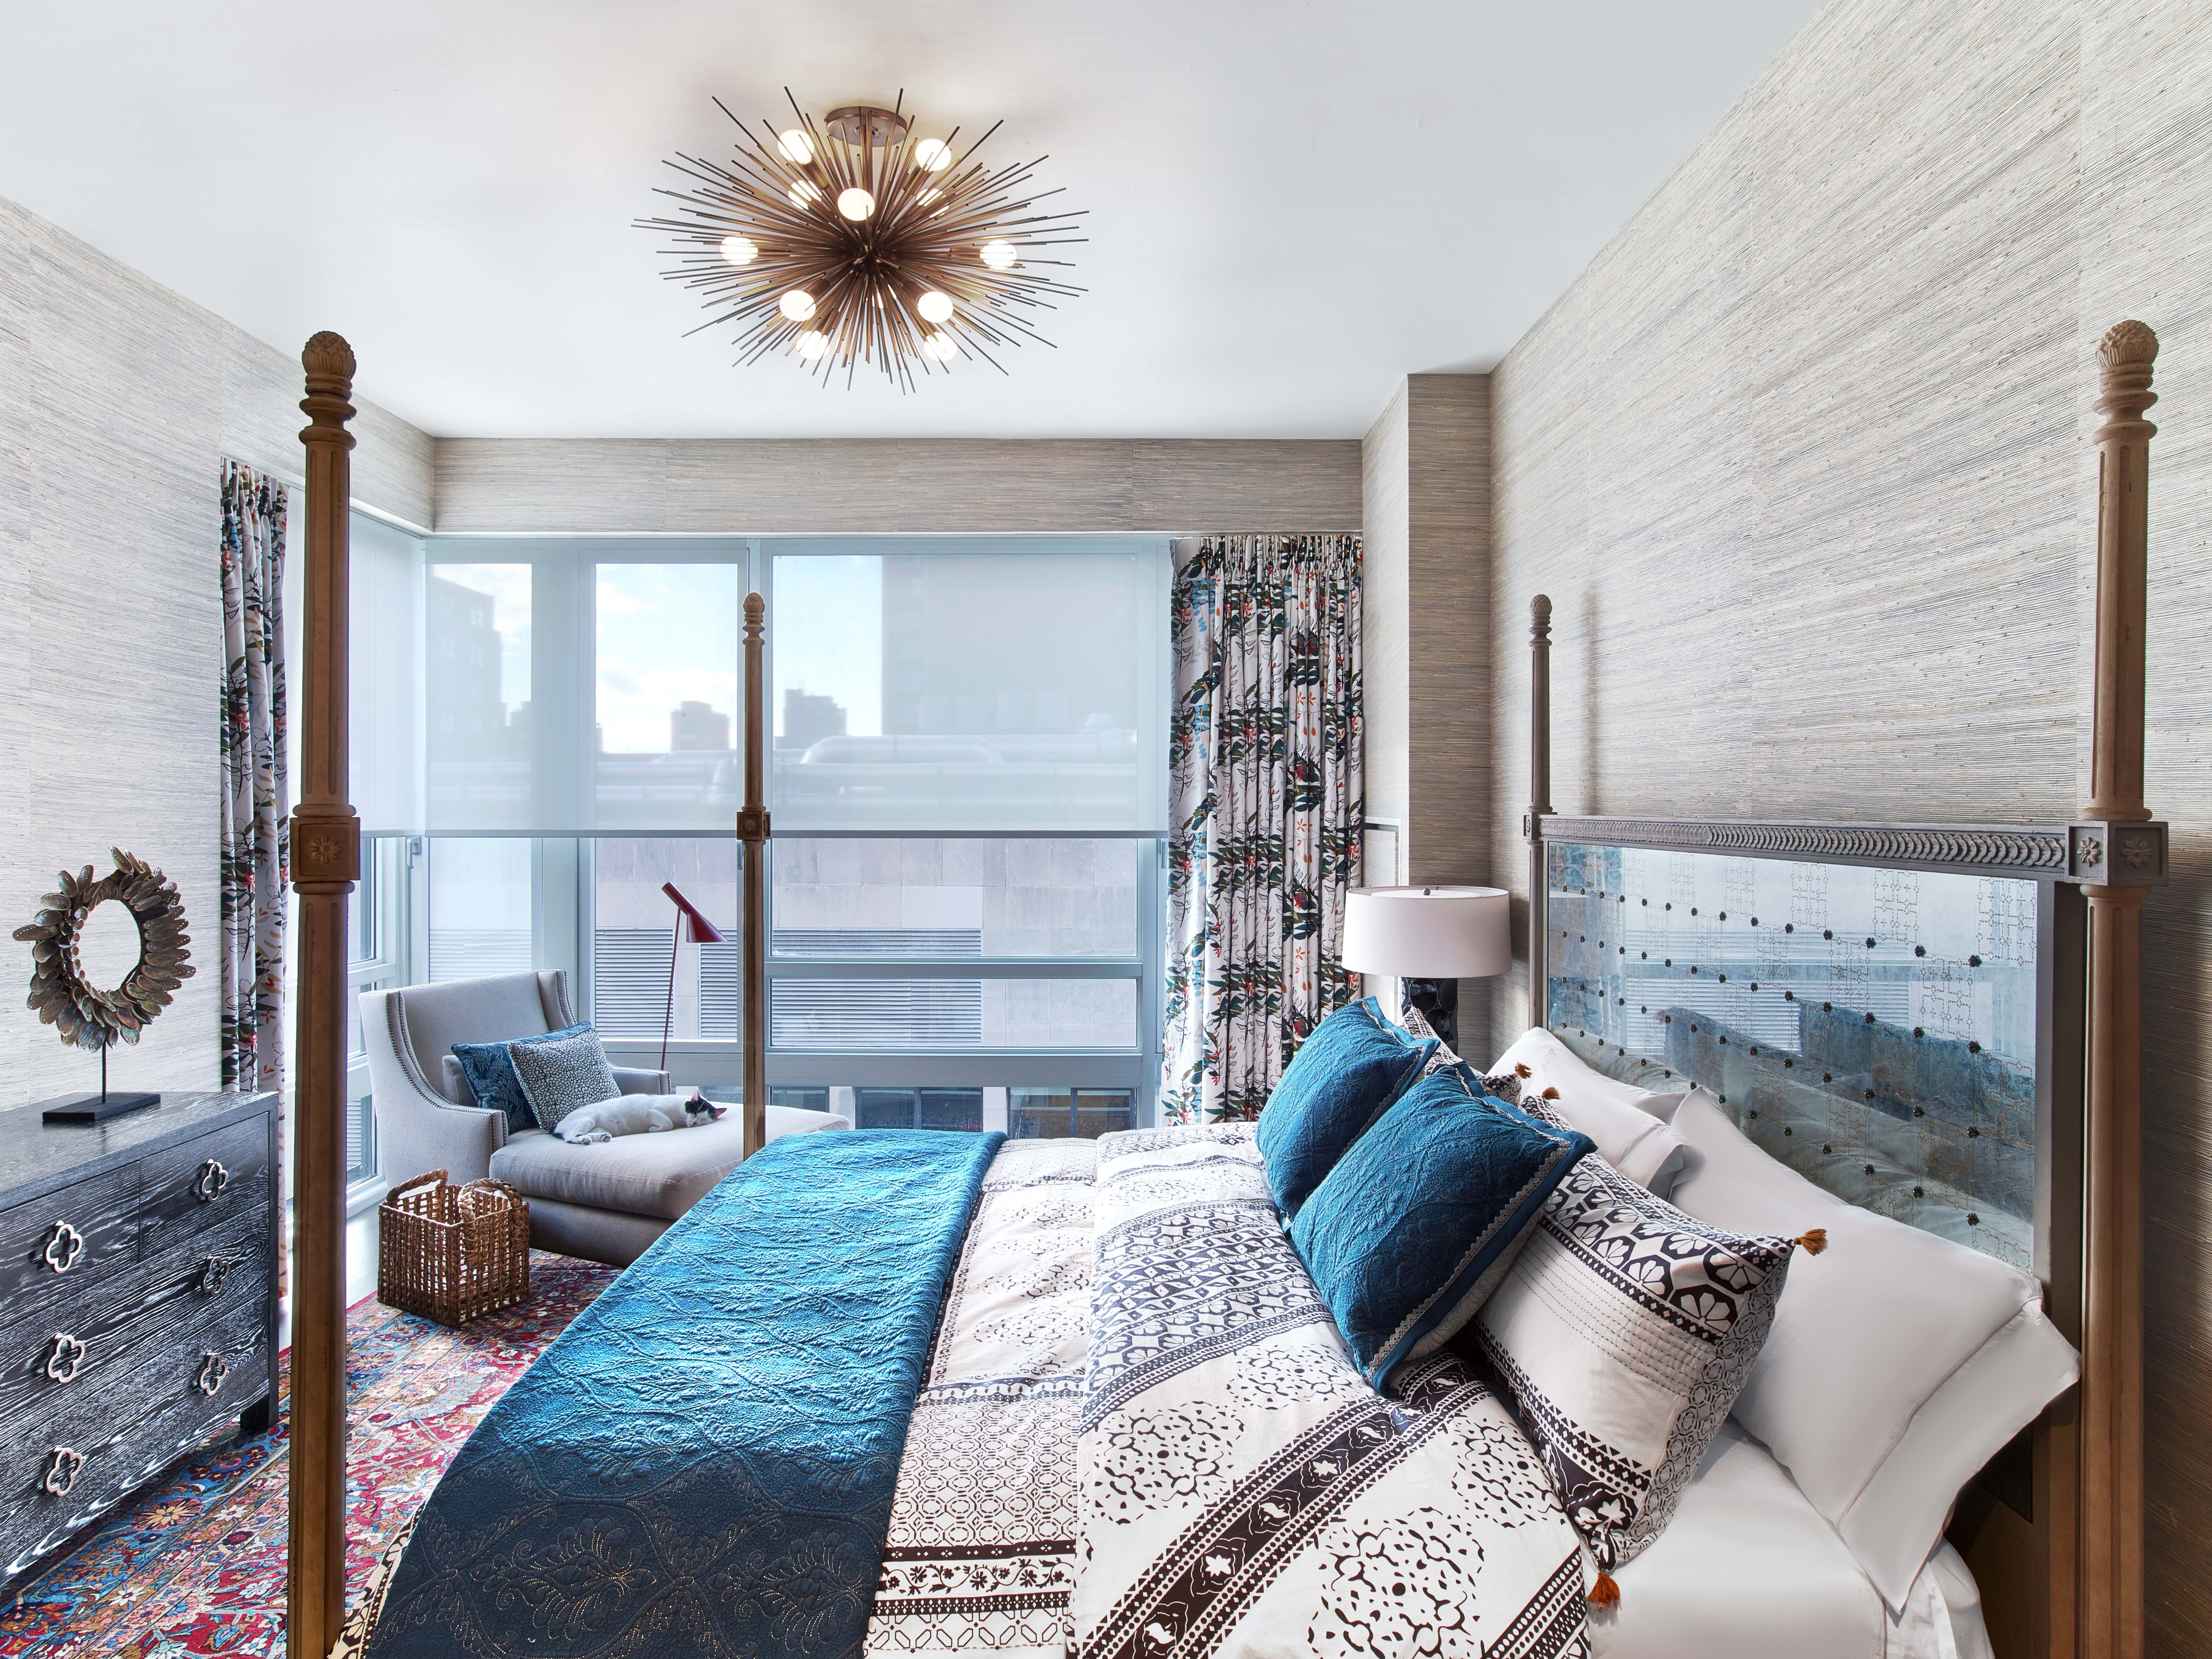 Exceptionnel Kati Curtis Design Provides Chelsea Interior Design Services And Transforms  A Penthouse For Clients With A Free Spirit And A Love For Travel.